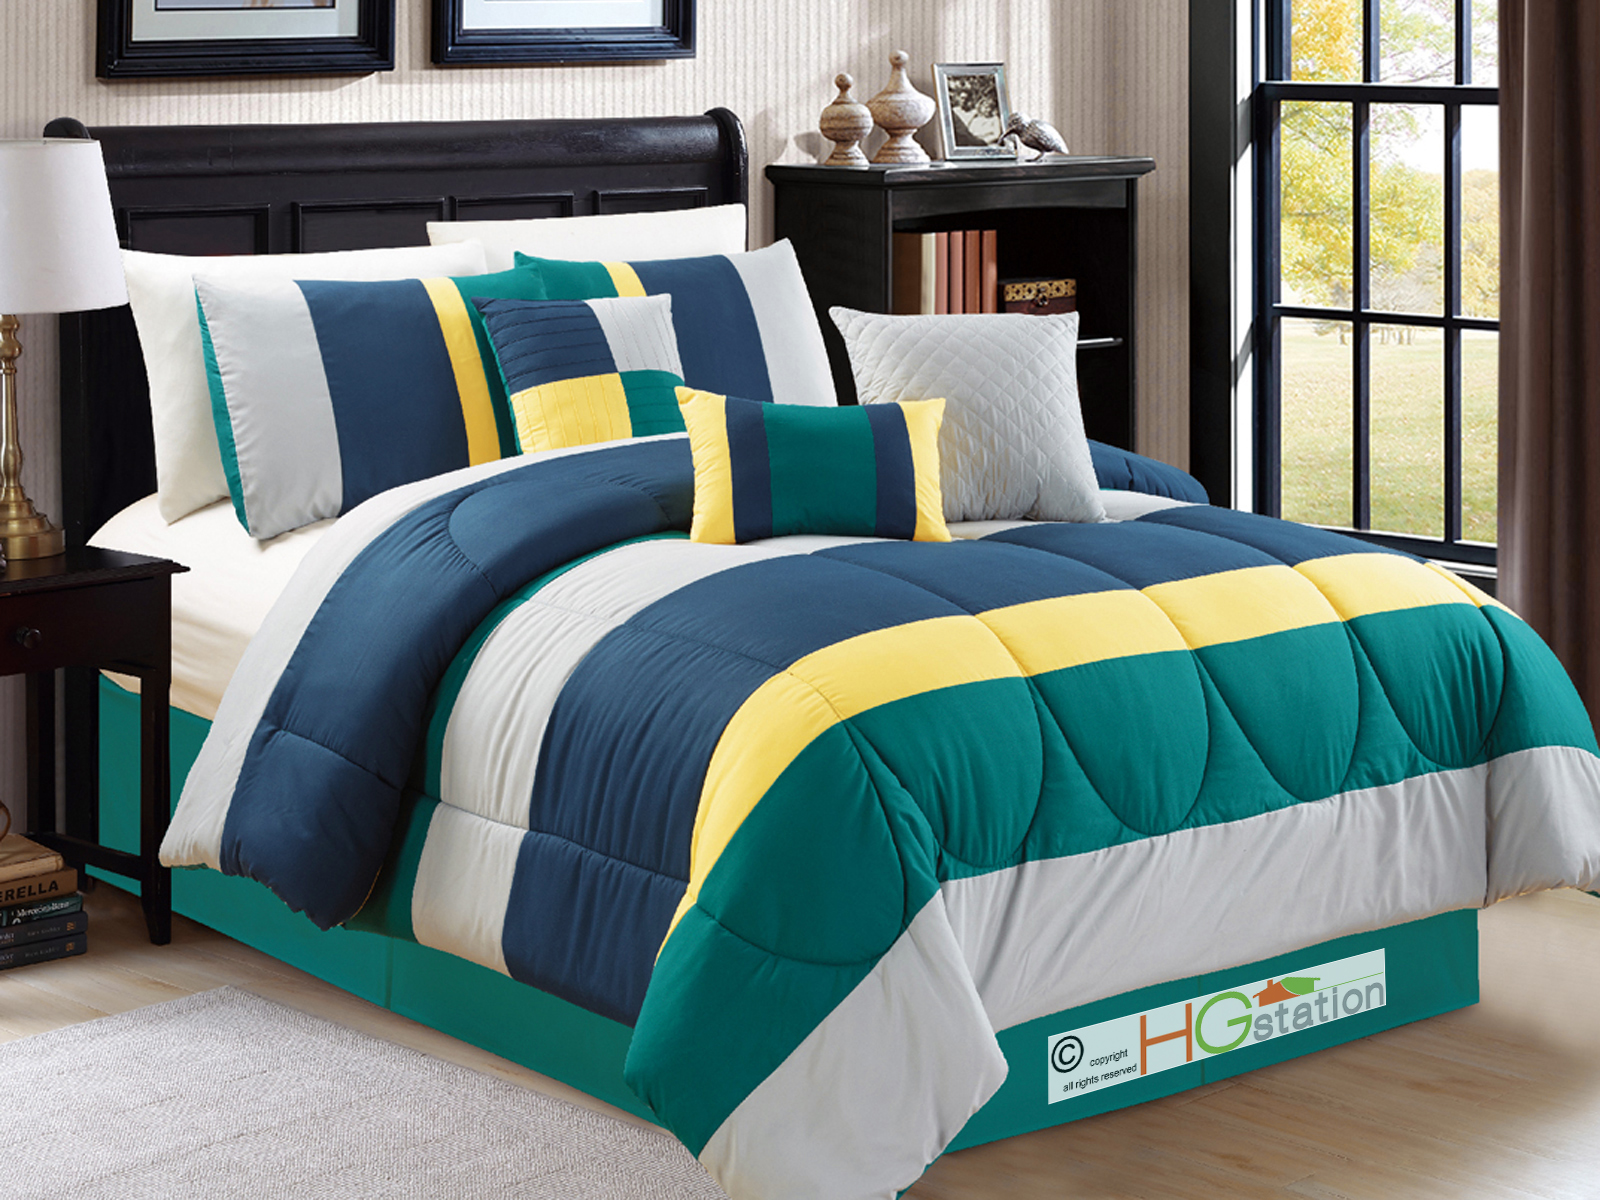 7 pc modern striped comforter set teal green navy blue yellow silver gray queen. Black Bedroom Furniture Sets. Home Design Ideas